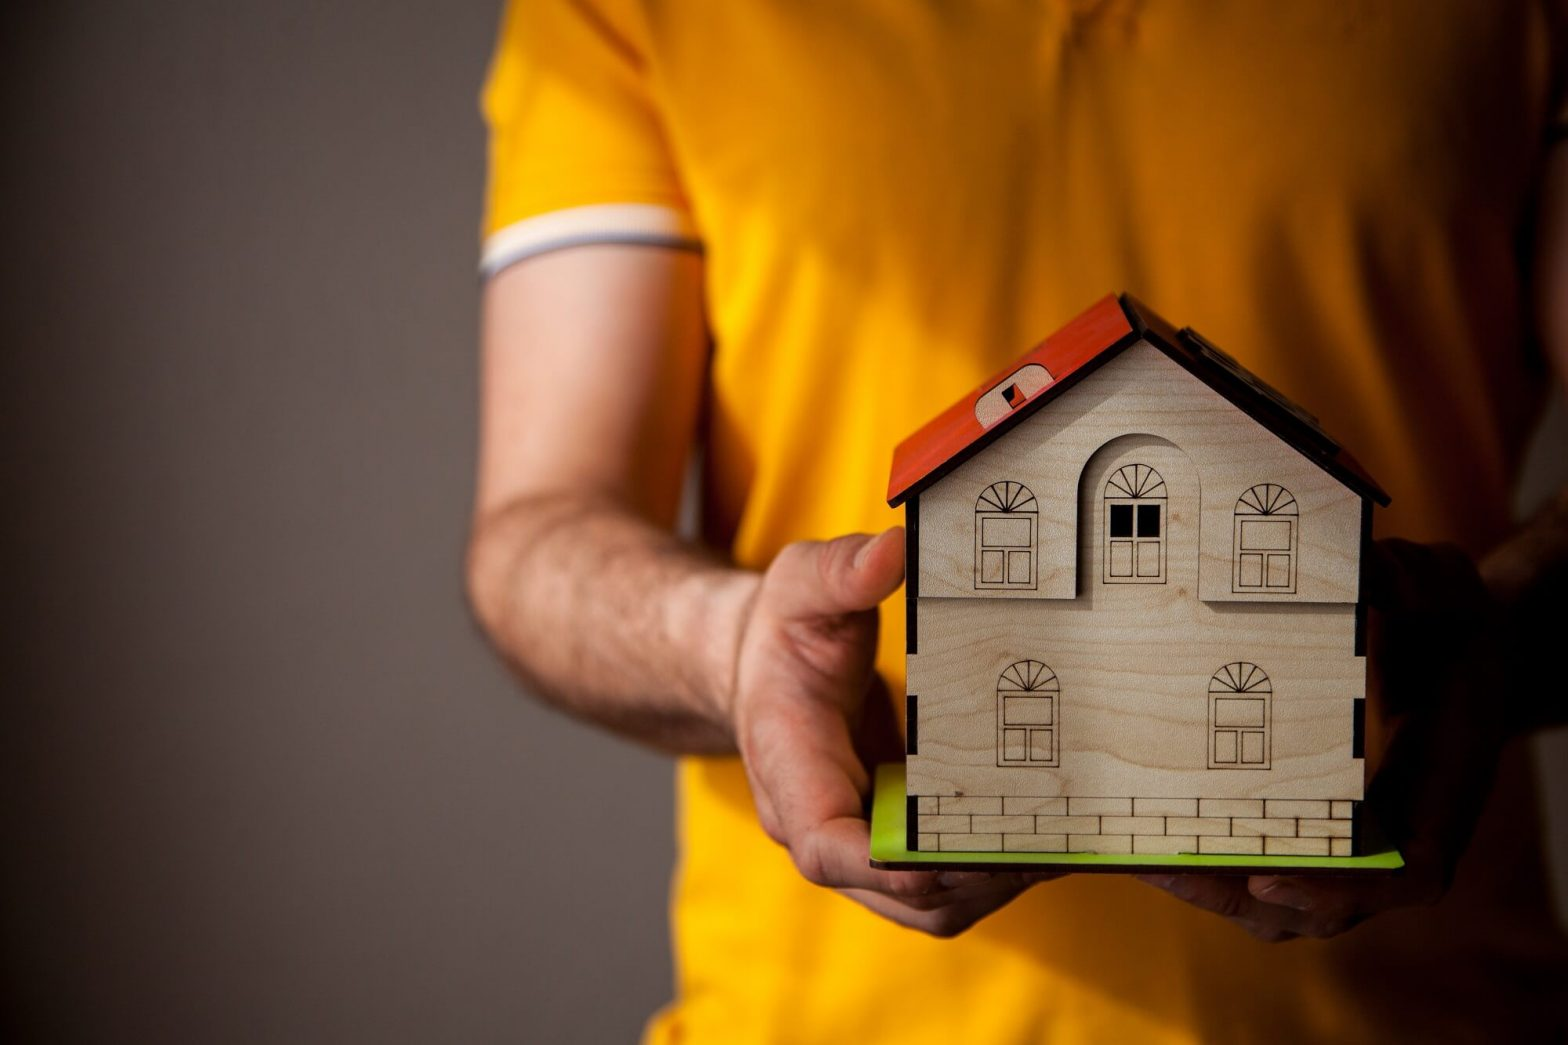 man holding a toy wooden house in his hands